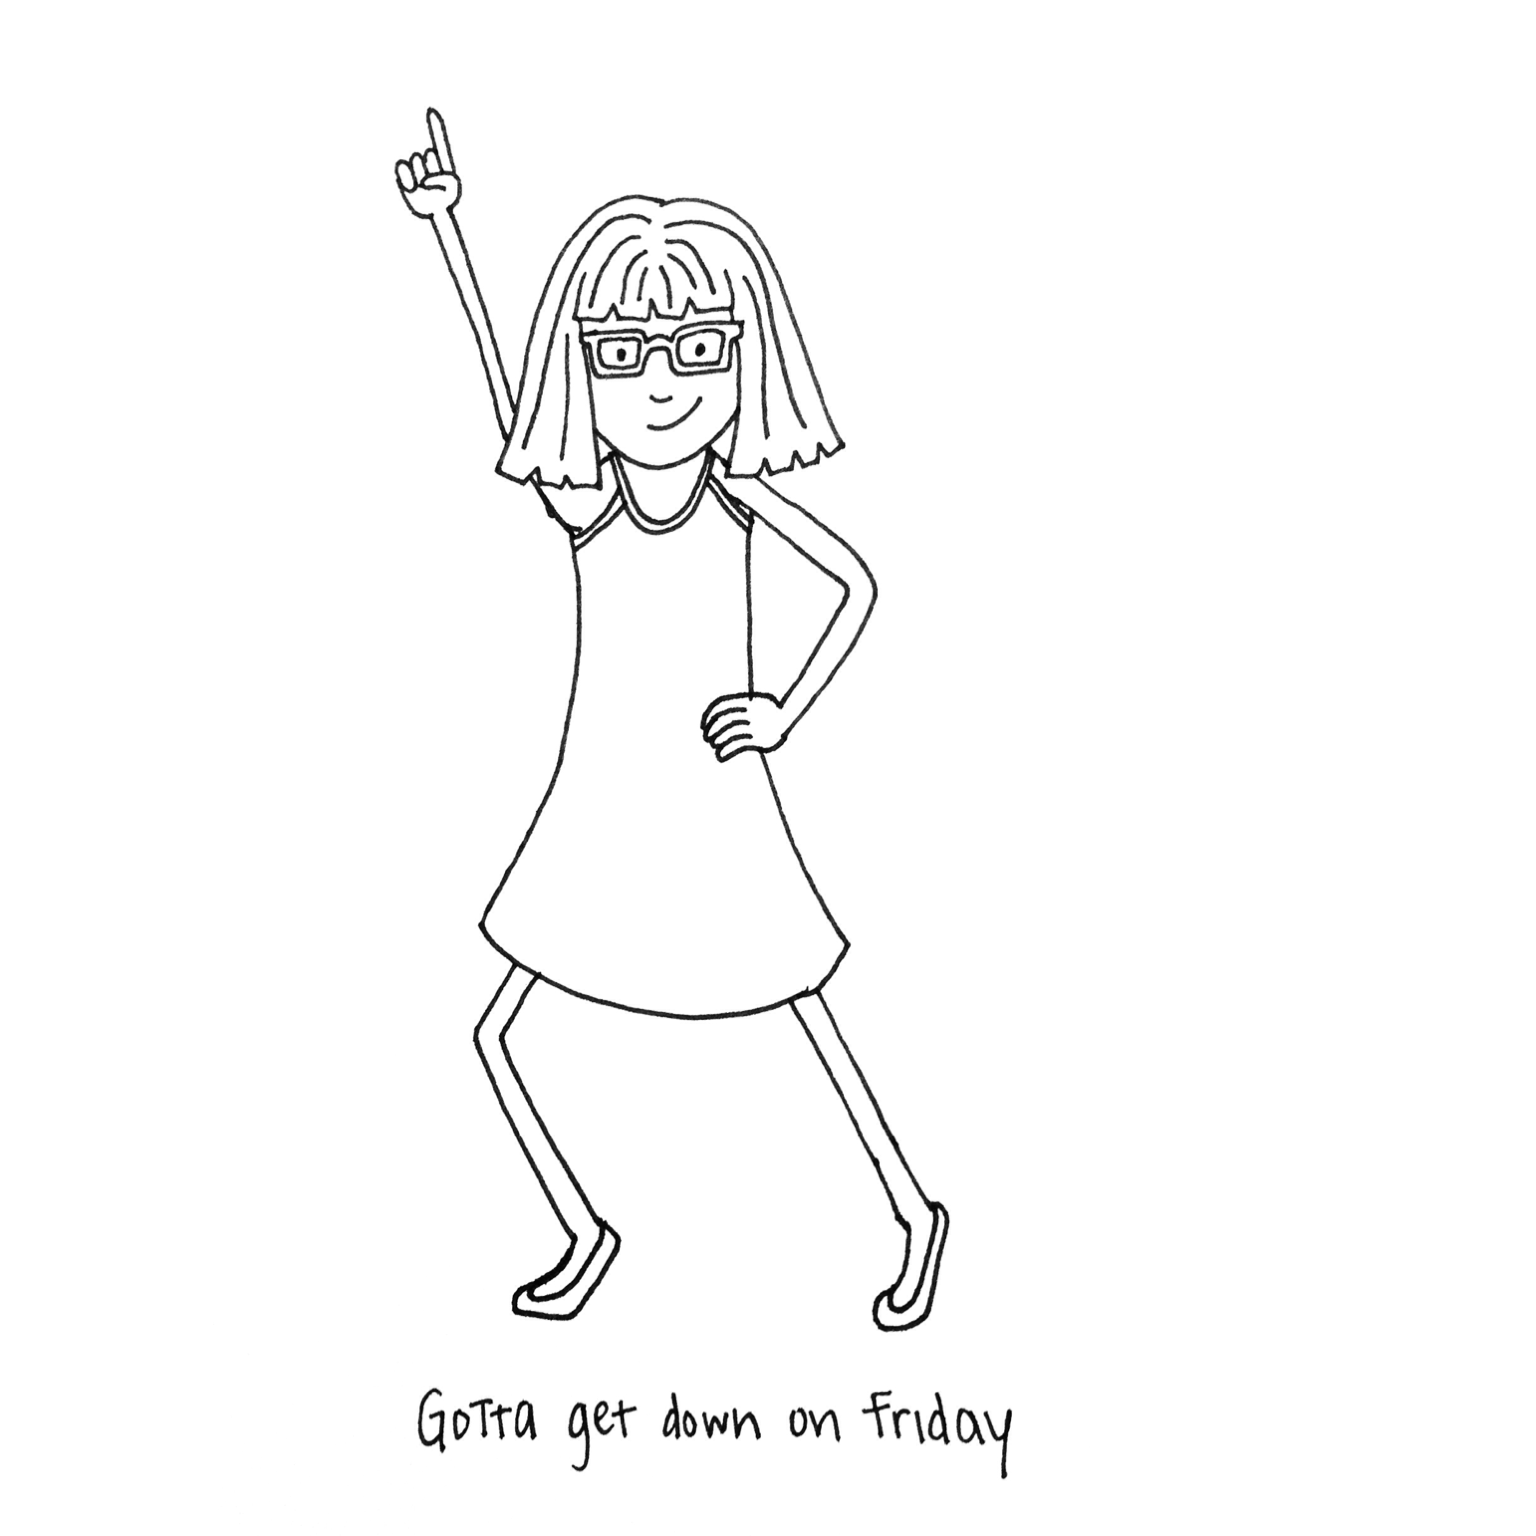 010_lucy-chen-gotta-get-down-on-friday.PNG